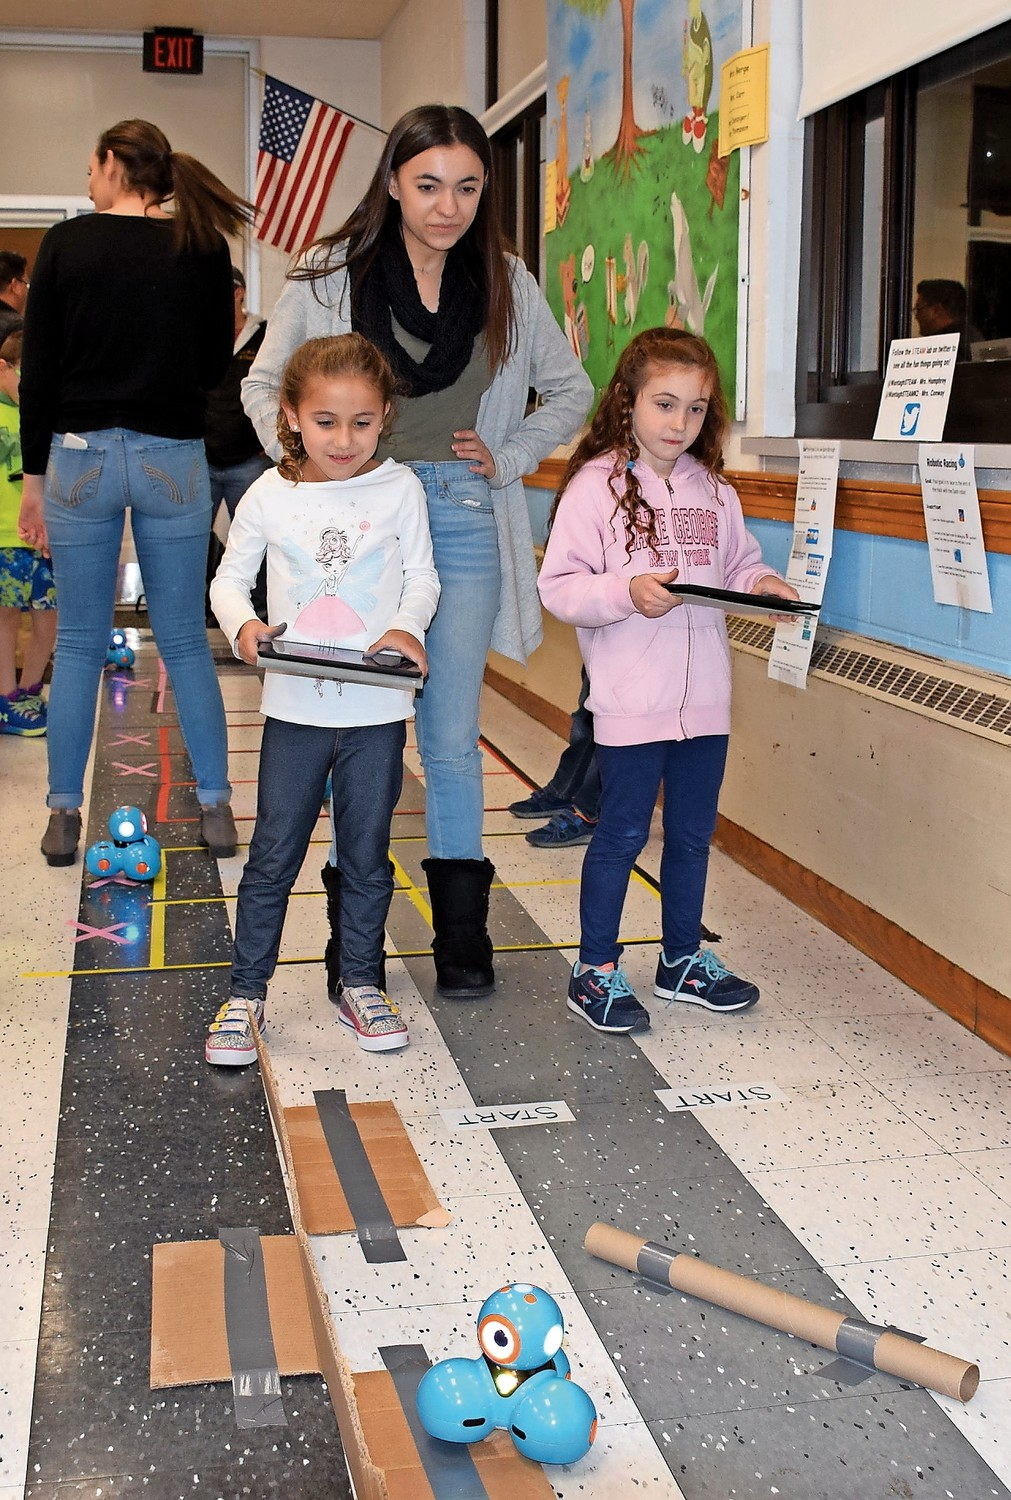 Hofstra University representative Jenna Alma assisted Wantagh Elementary School first-graders Julianna Lorenzotti, left, and Ella Tierney.